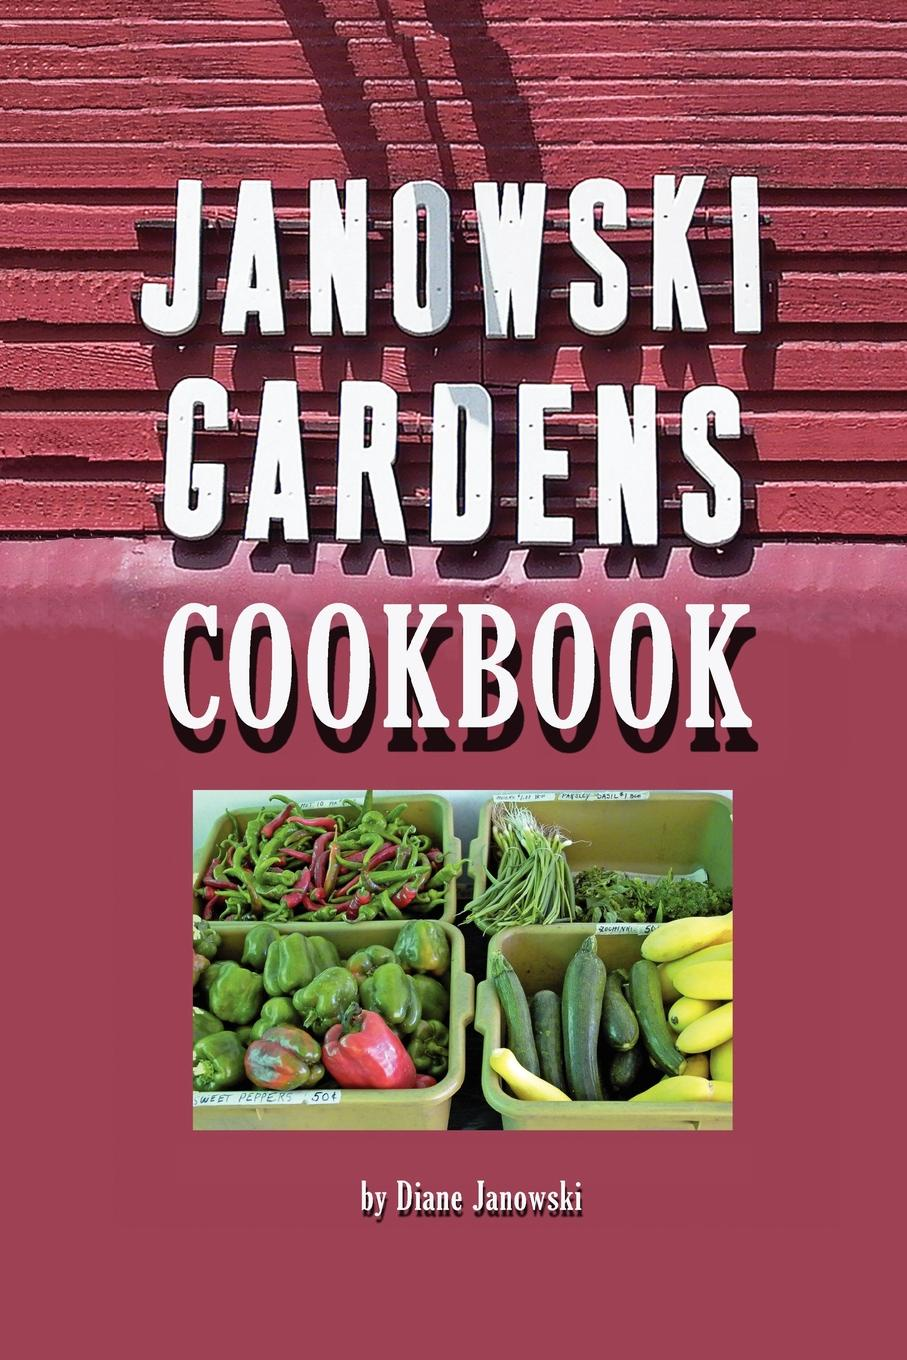 Diane Janowski Janowski Gardens Cookbook sally bee the secret ingredient family cookbook